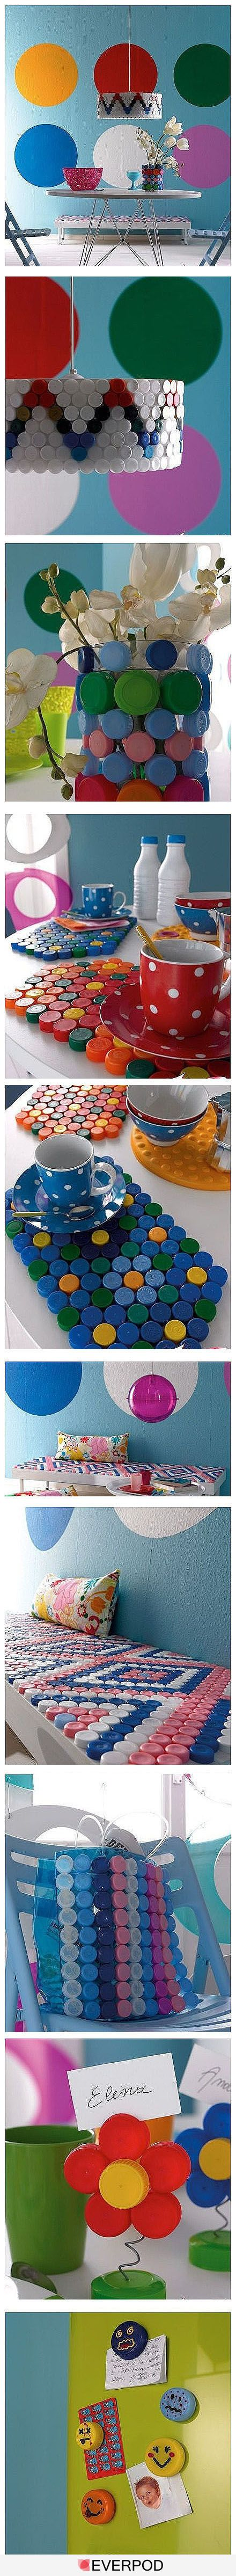 creative bottle caps crafts and projects-homesthetics (20)